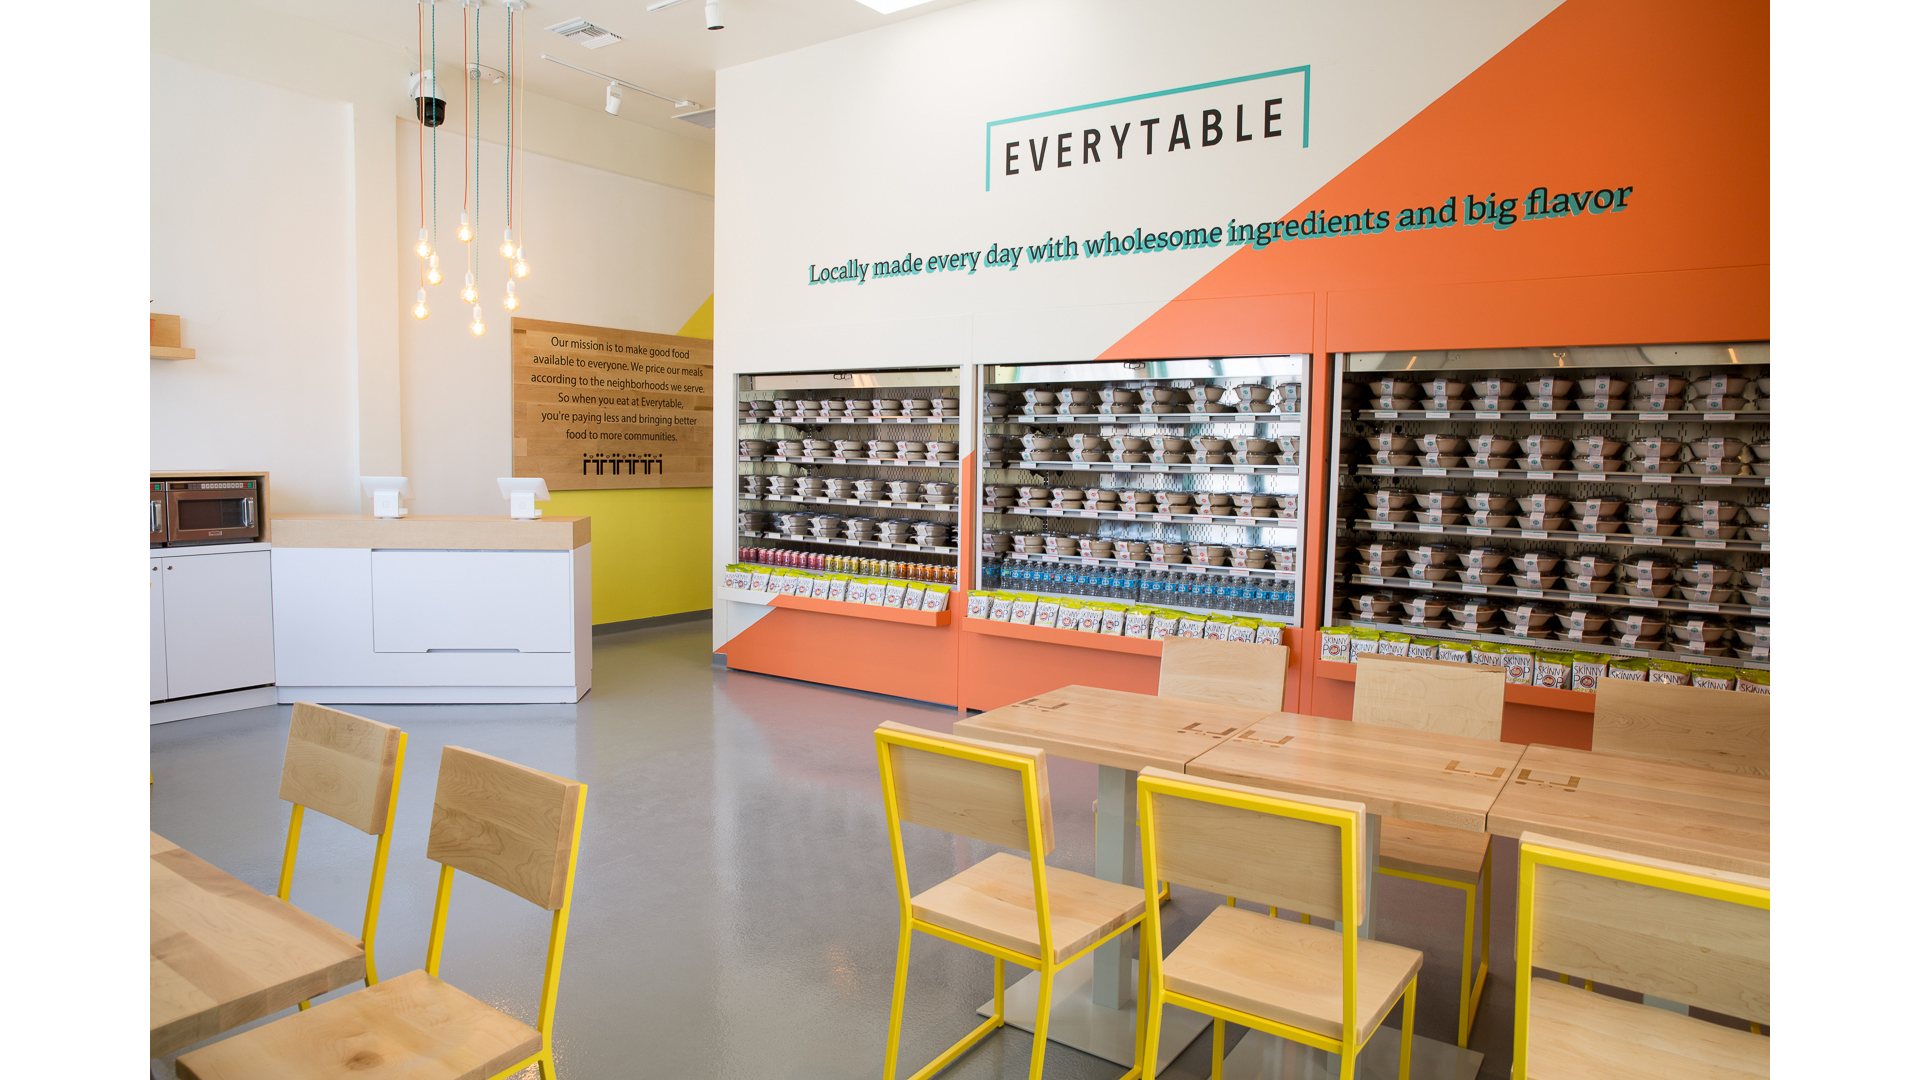 Everytable Hoover interior healthy fast food in Los Angeles California